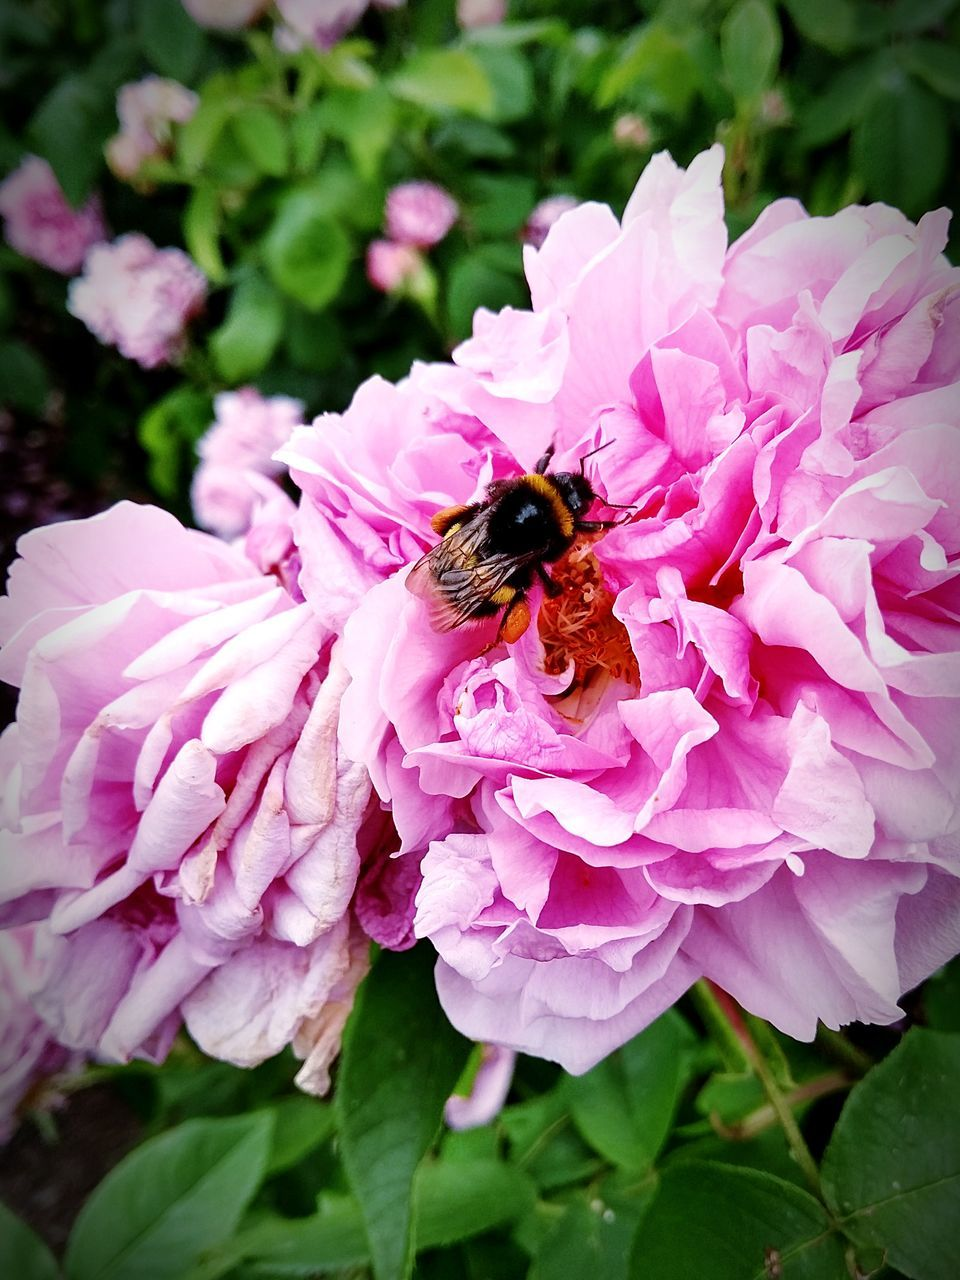 one animal, insect, flower, animals in the wild, animal themes, petal, animal wildlife, nature, growth, fragility, bee, beauty in nature, freshness, plant, wildlife, outdoors, day, pollination, honey bee, pink color, no people, bumblebee, flower head, close-up